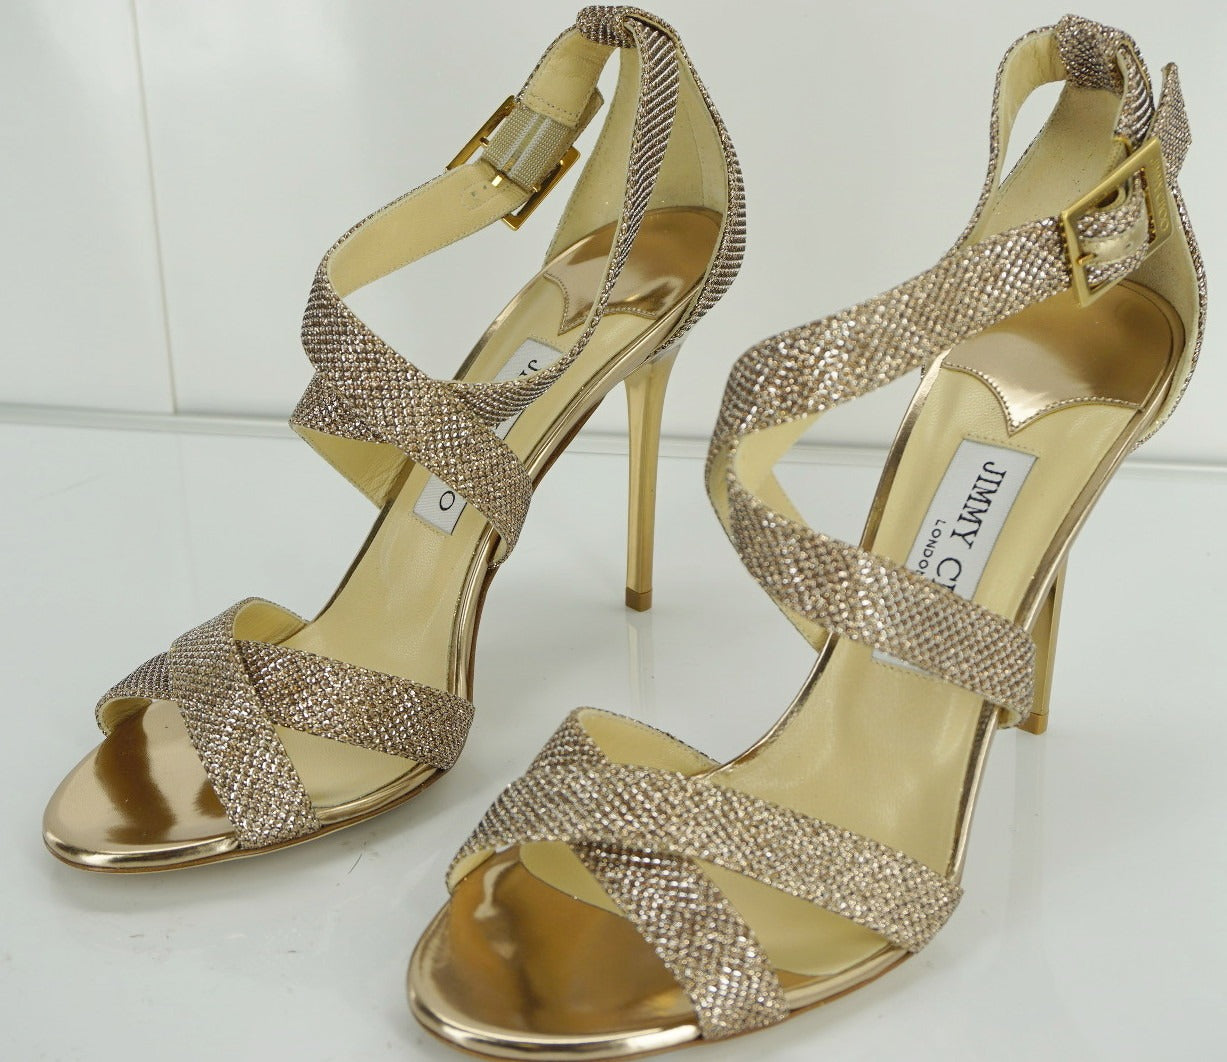 Jimmy Choo Lottie Glitter Ankle Strappy Sandal SZ 39.5 New $750 High Heel